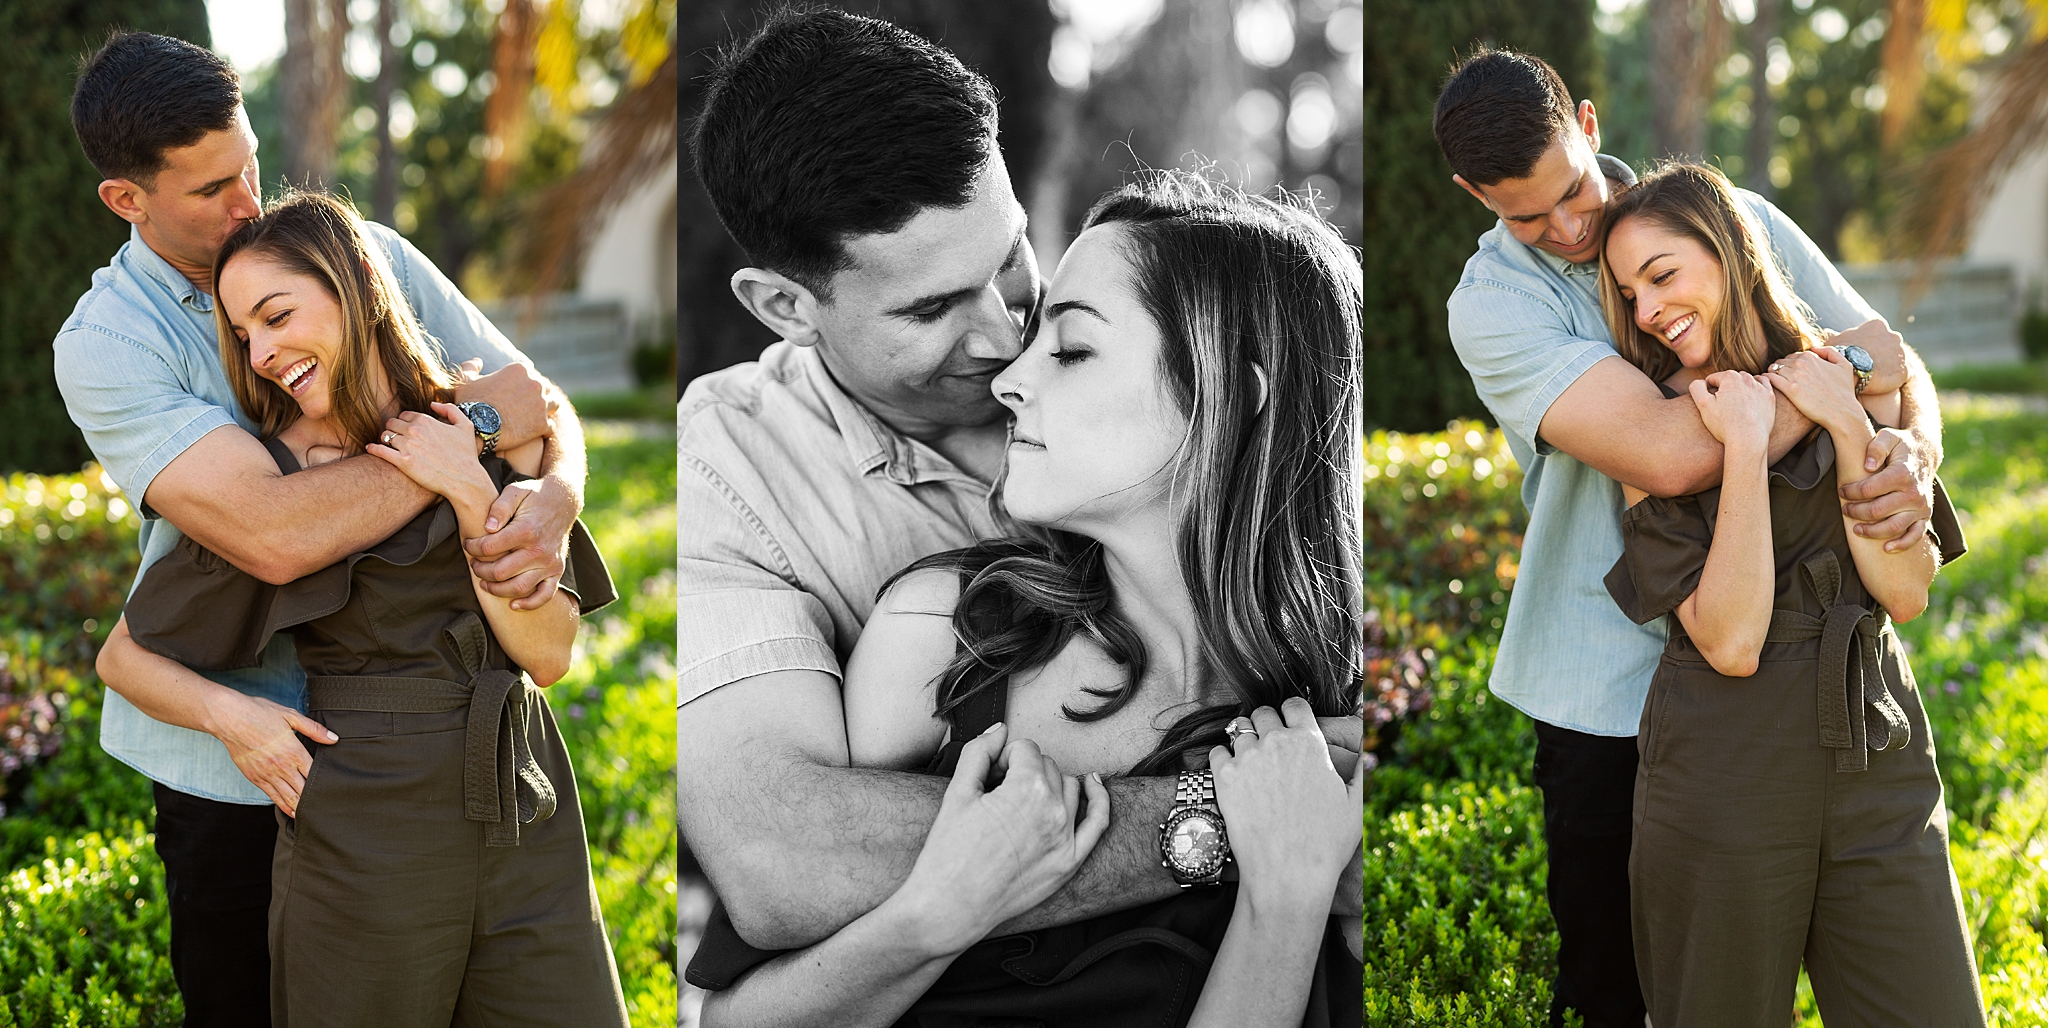 Golden hour engagement session at Balboa Park, San Diego, California with Meaghan and Eli.